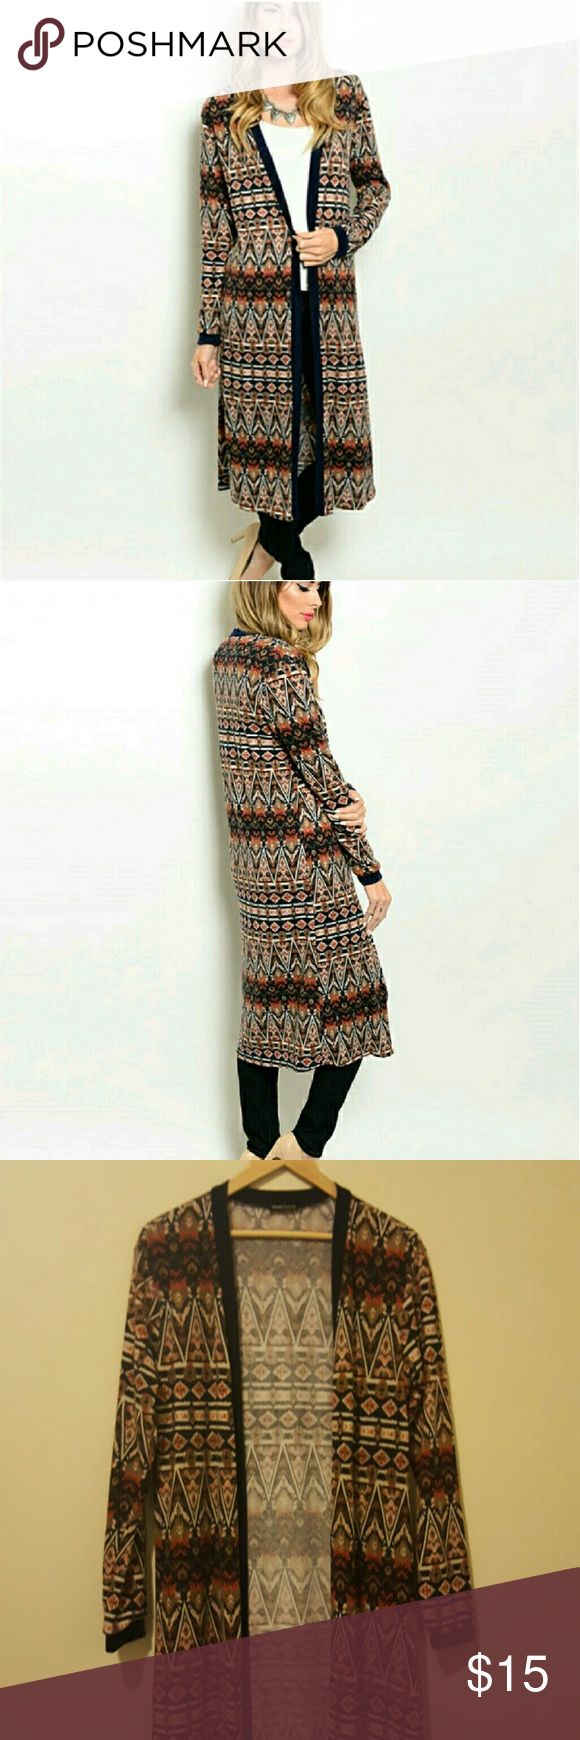 Long Tribal Print Sweater Adorable tribal print sweater. Longer length, perfect with leggings and cute boots. Jella Couture Sweaters Cardigans